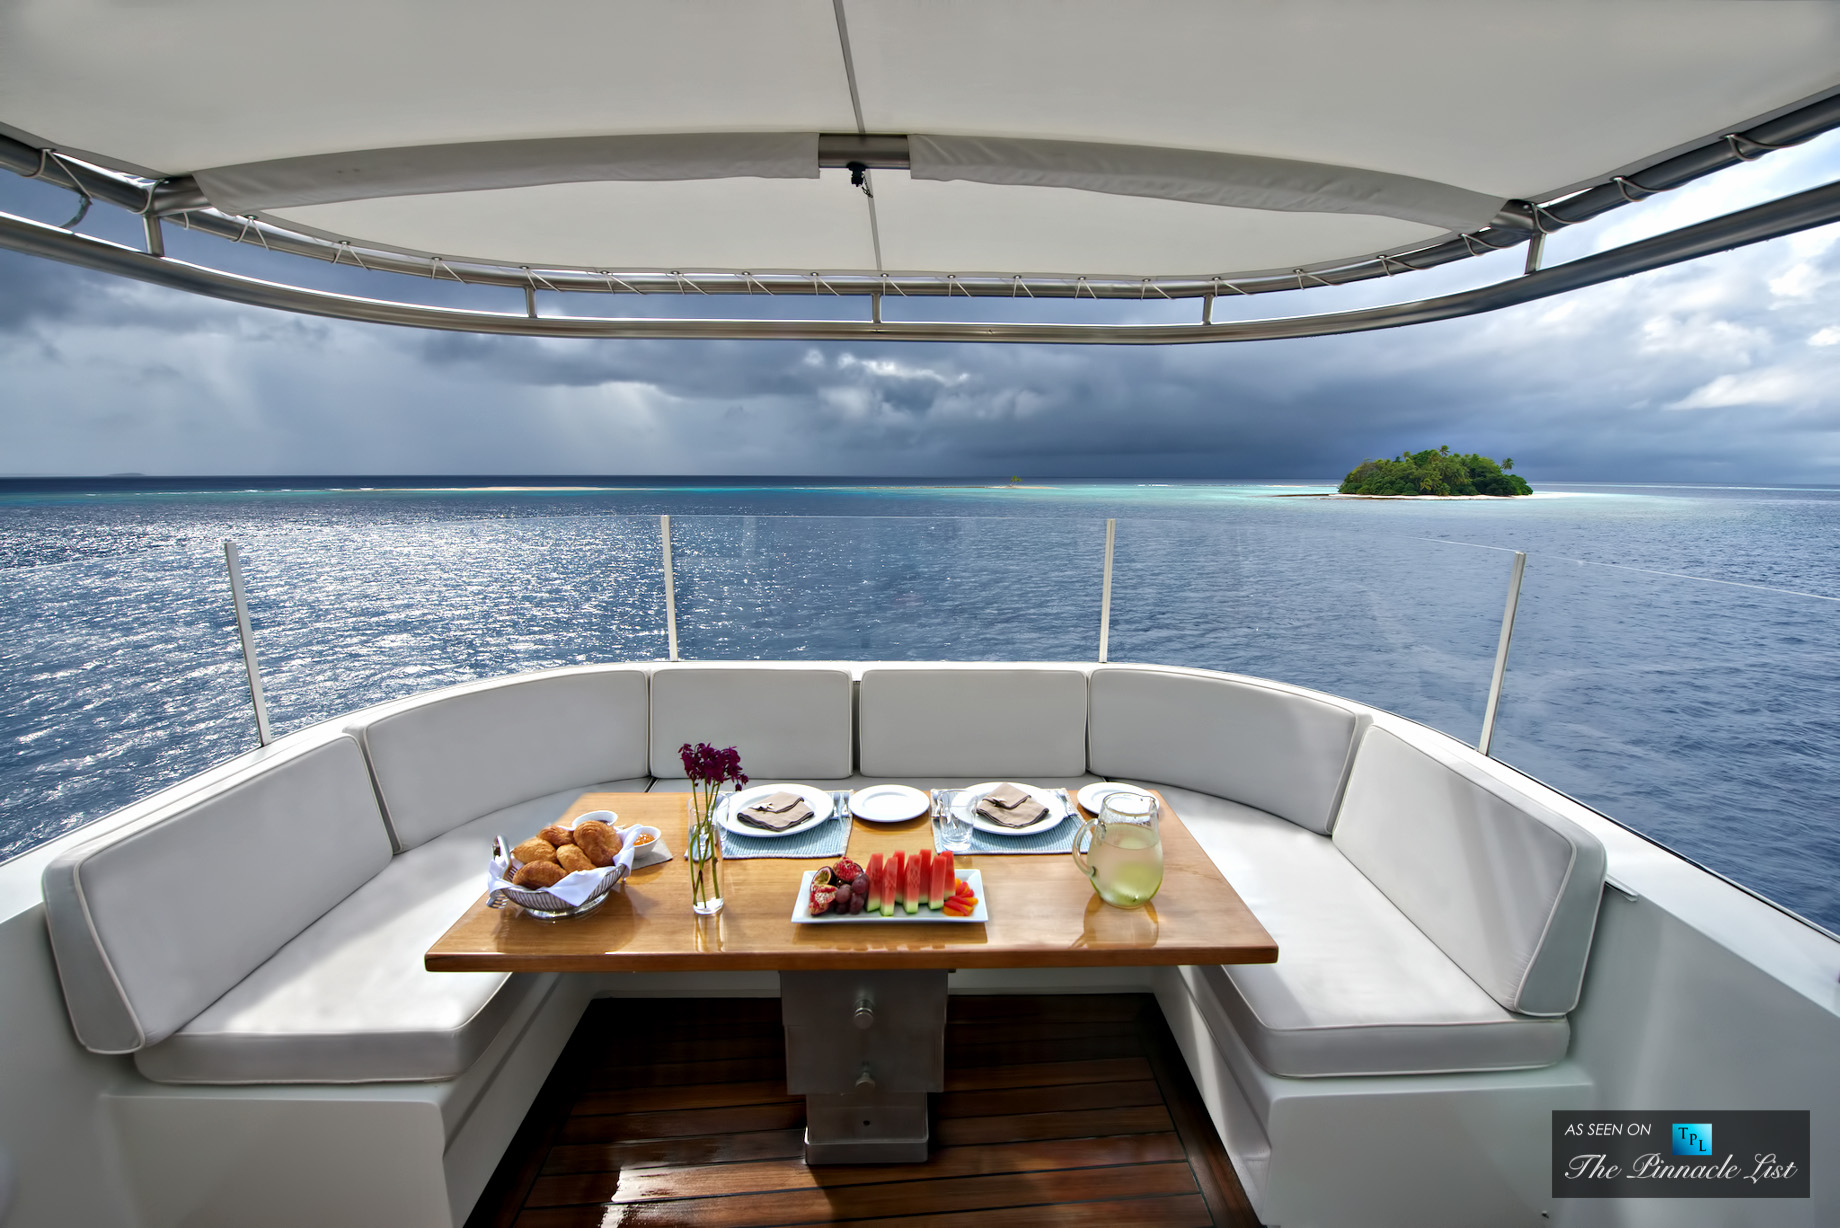 Senses Superyacht – Charter Availability for Caribbean and South Pacific